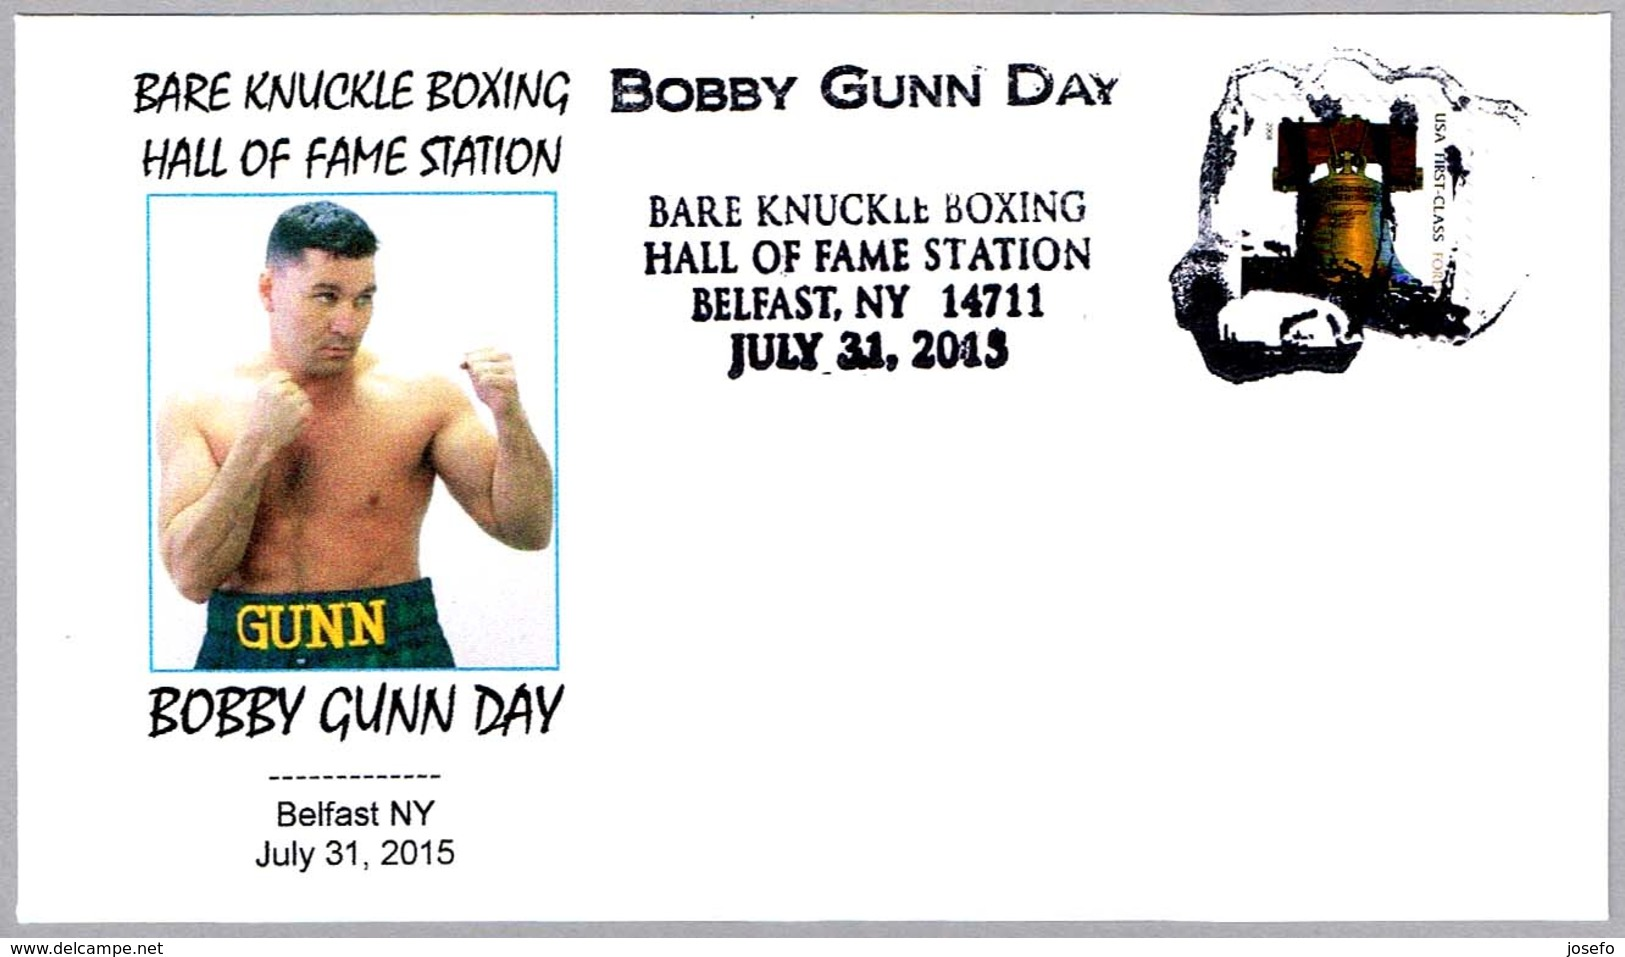 Bare Knuckle Boxing Hall Of Fame - BOBBY GUNN DAY. Boxeo - Boxing. Belfast NY 2015 - Boxeo